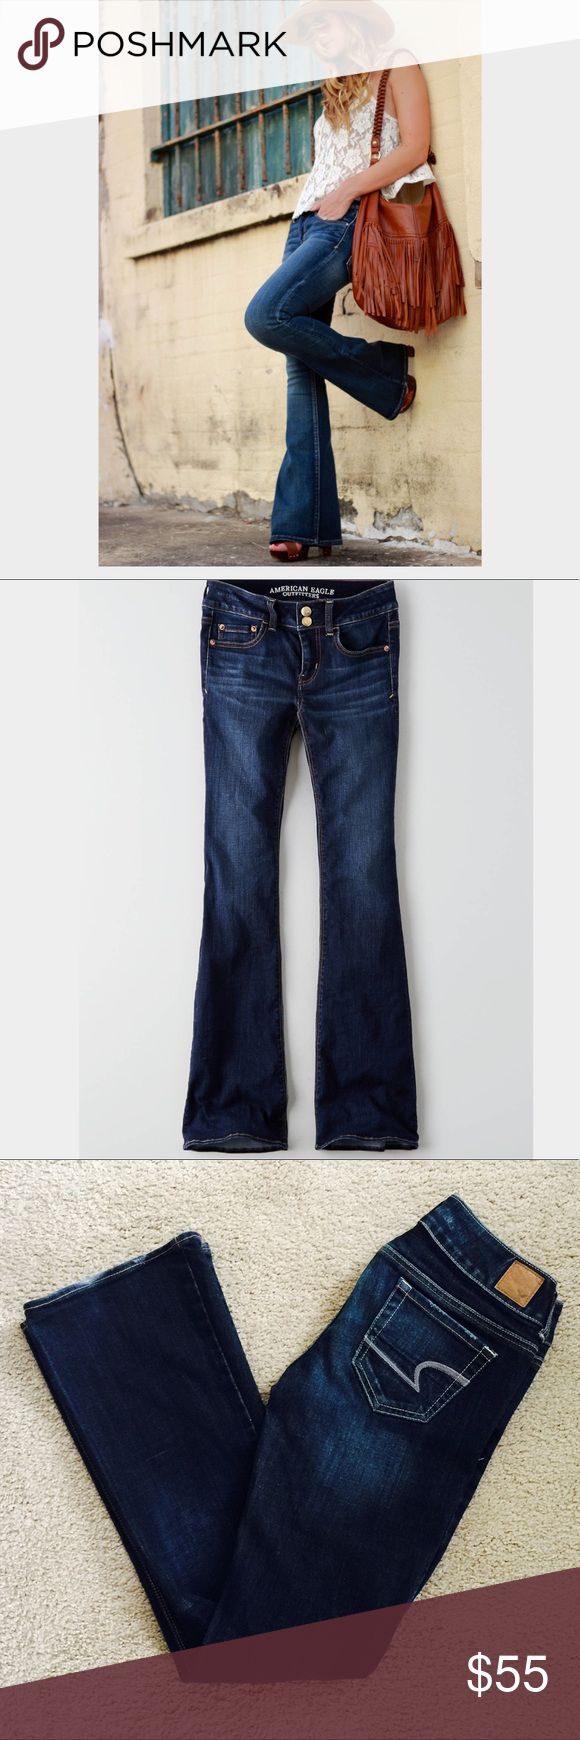 ❗️American Eagle Artist Dark Denim Jeans MSRP $88 ❗️American Eagle Artist Stretch Dark Denim Jeans. Retails $88 in great condition size 2. Feel free to make an offer! I'm giving to the first reasonable offer I receive & give great bundle deals! Spring cleanout sale--all must go! ;-) American Eagle Outfitters Jeans